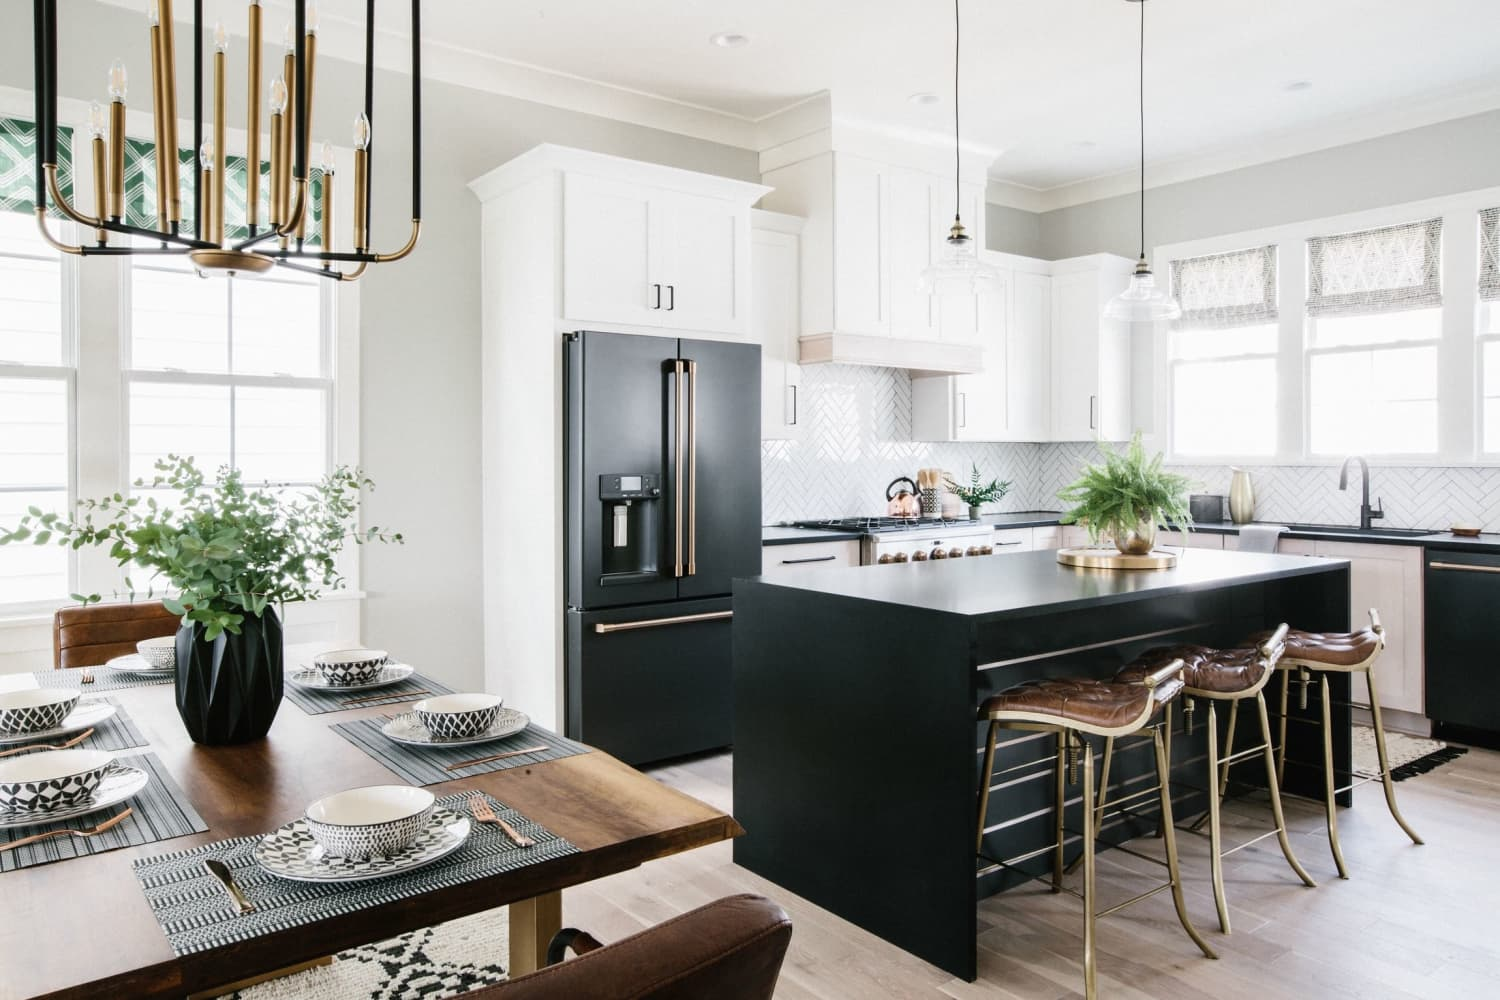 This Kitchen and Bath Trend Is Good for Anyone Looking to Add Character and Shine to an Upcoming Project